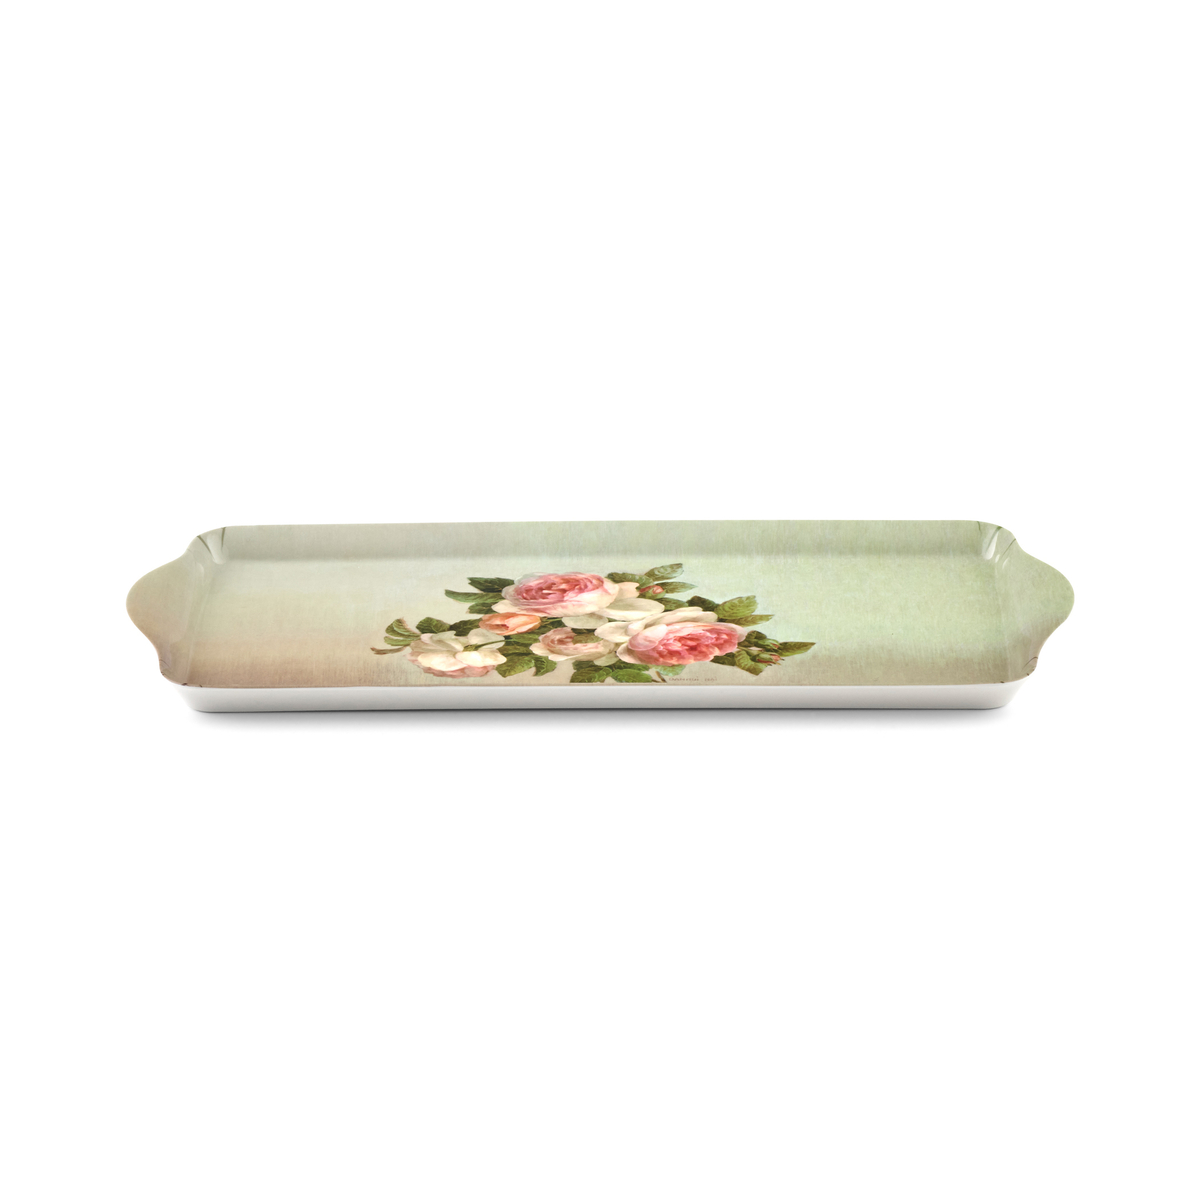 Pimpernel Antique Roses Sandwich Tray image number 1